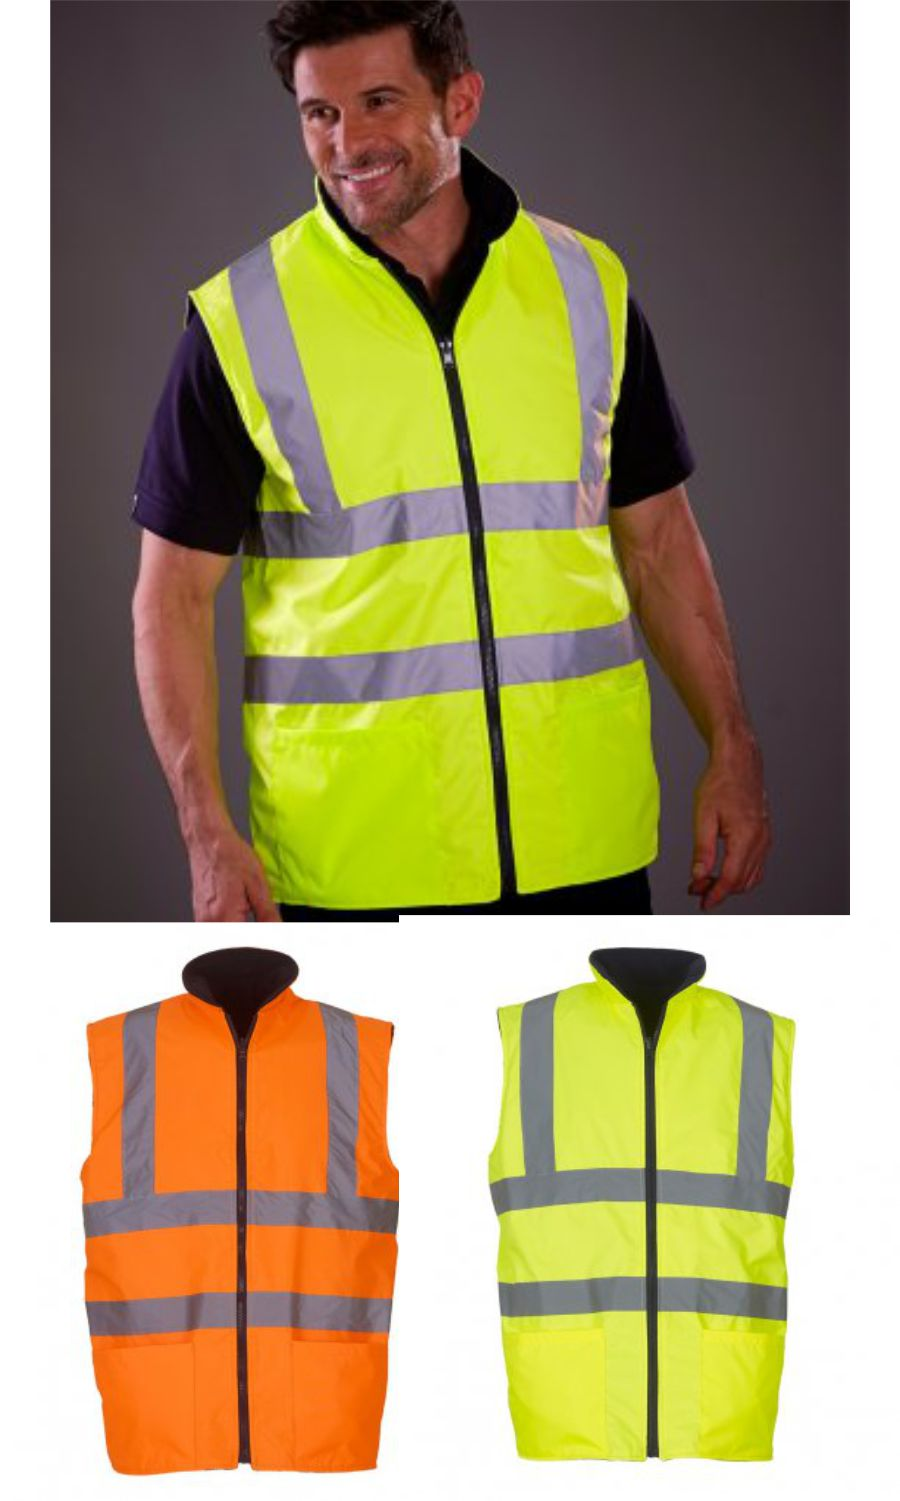 Yoko YK061 Hi Vis Reversible Fleece Body Warmer